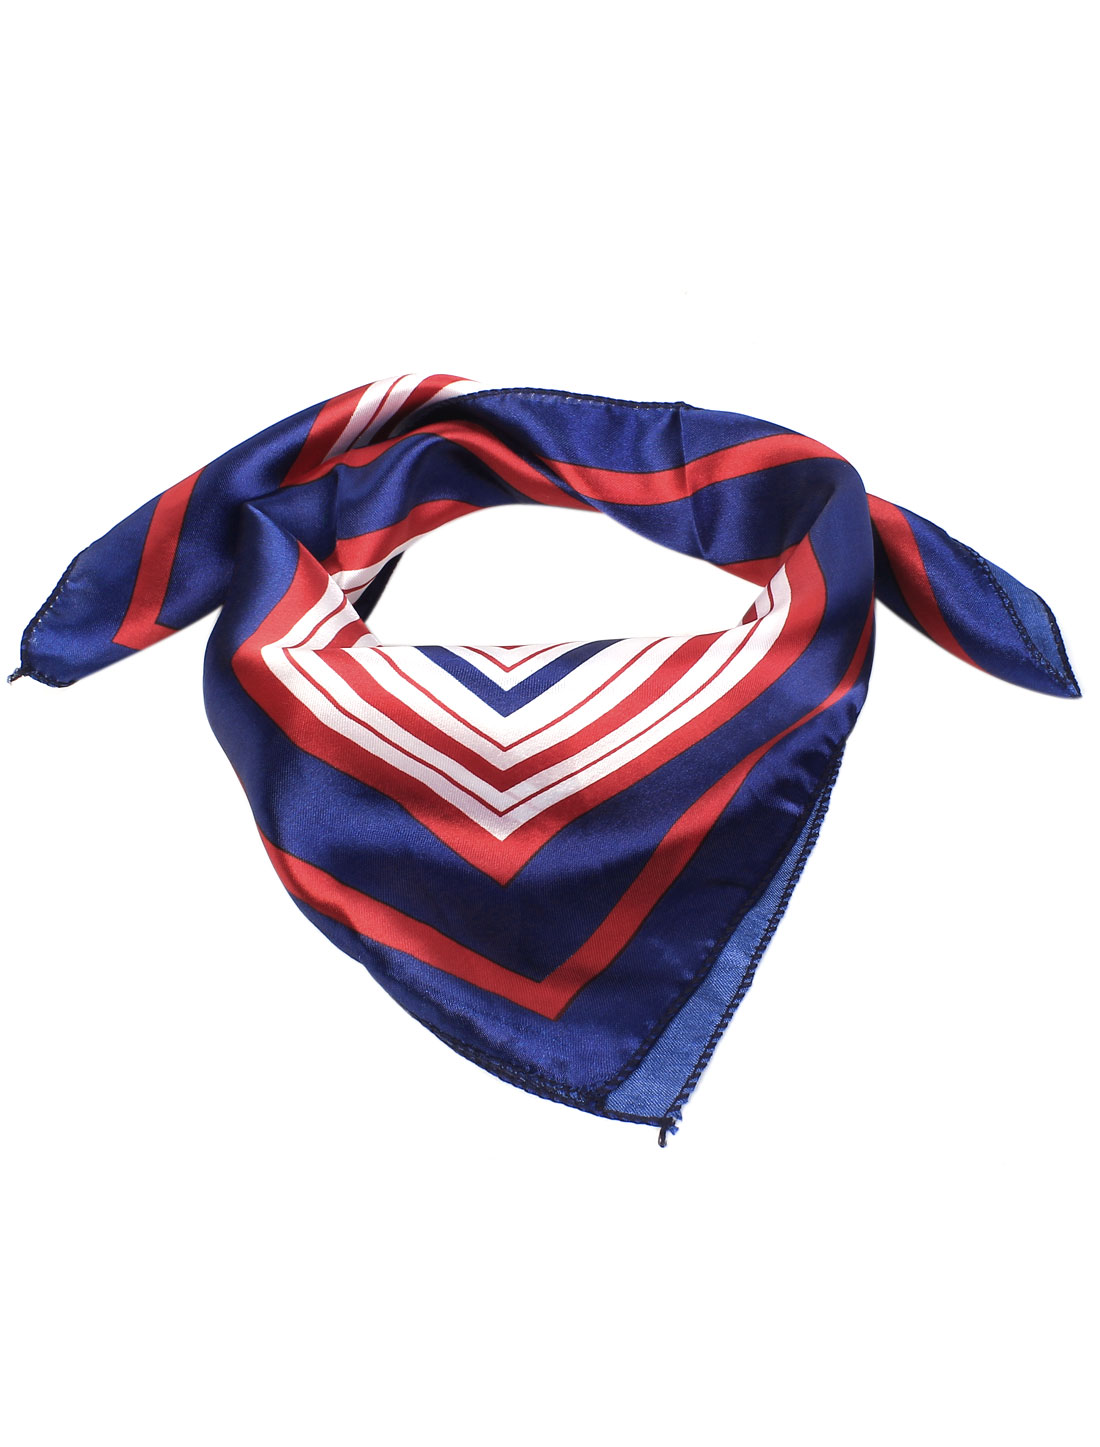 Women Square Pattern Polyester Square Neck Head Scarf Wrap Kerchief Tricolor